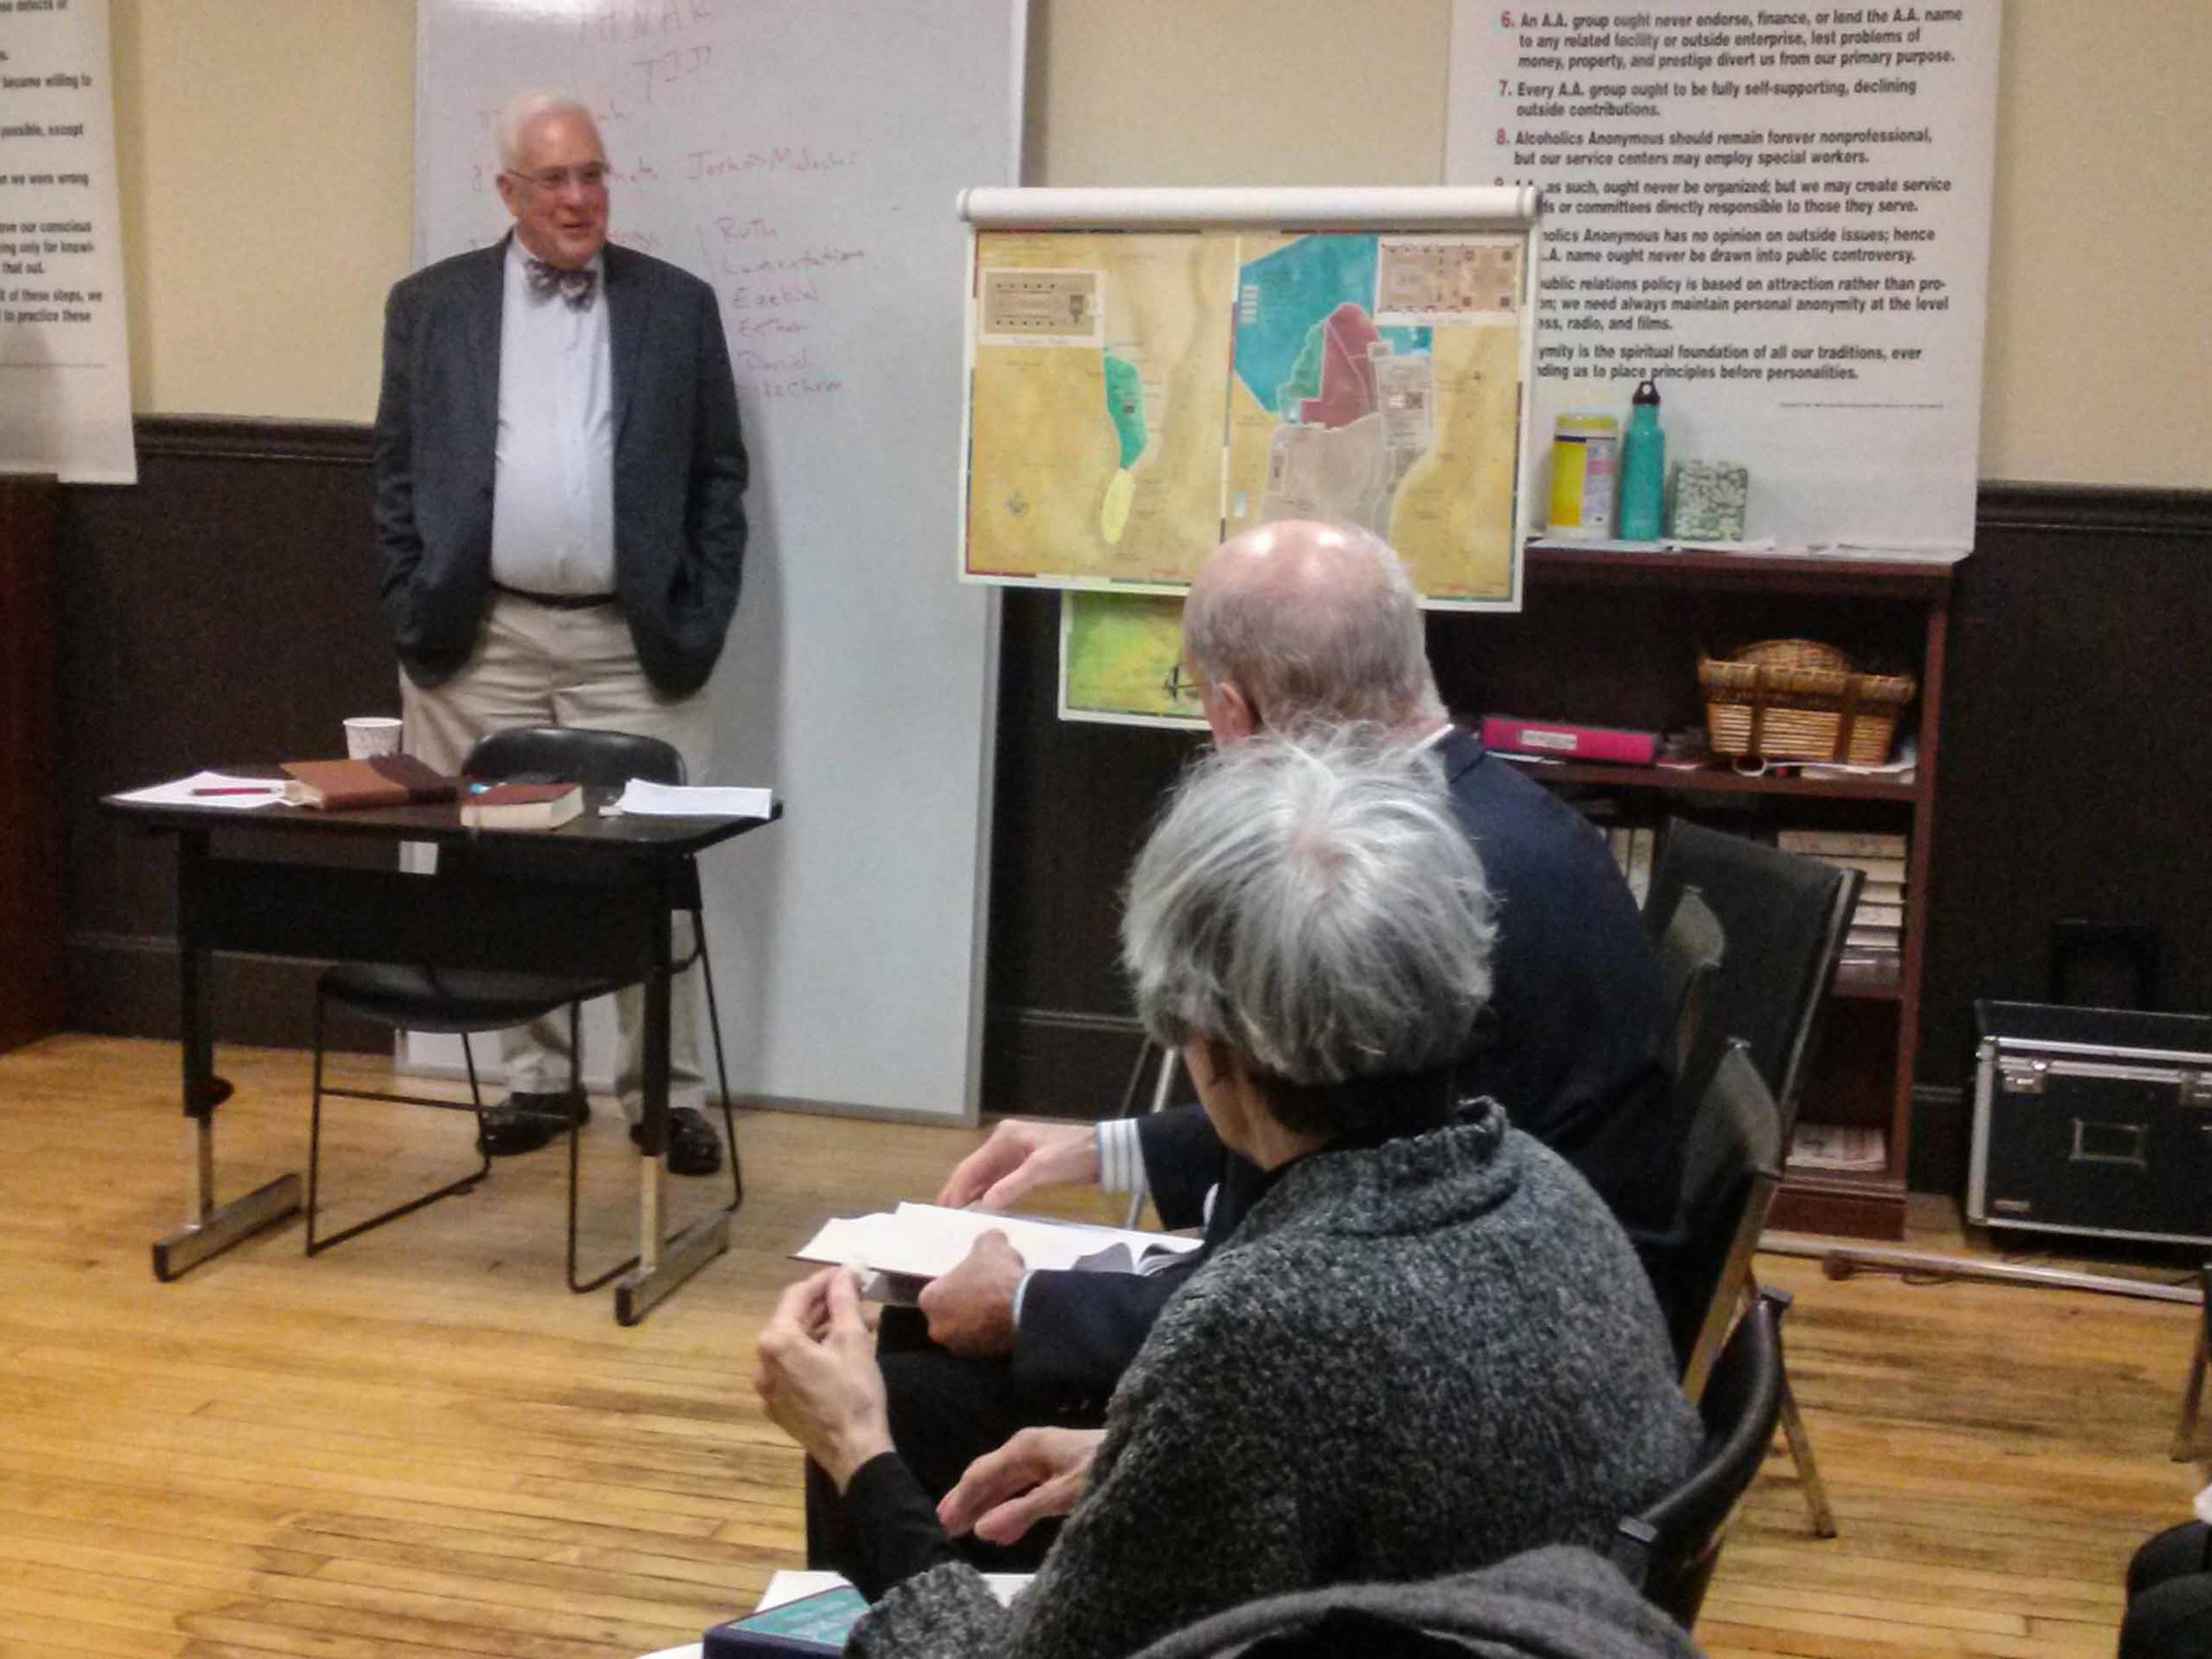 Father Pete Powell leading the Adult Forum on Sunday, March 5, 2017.